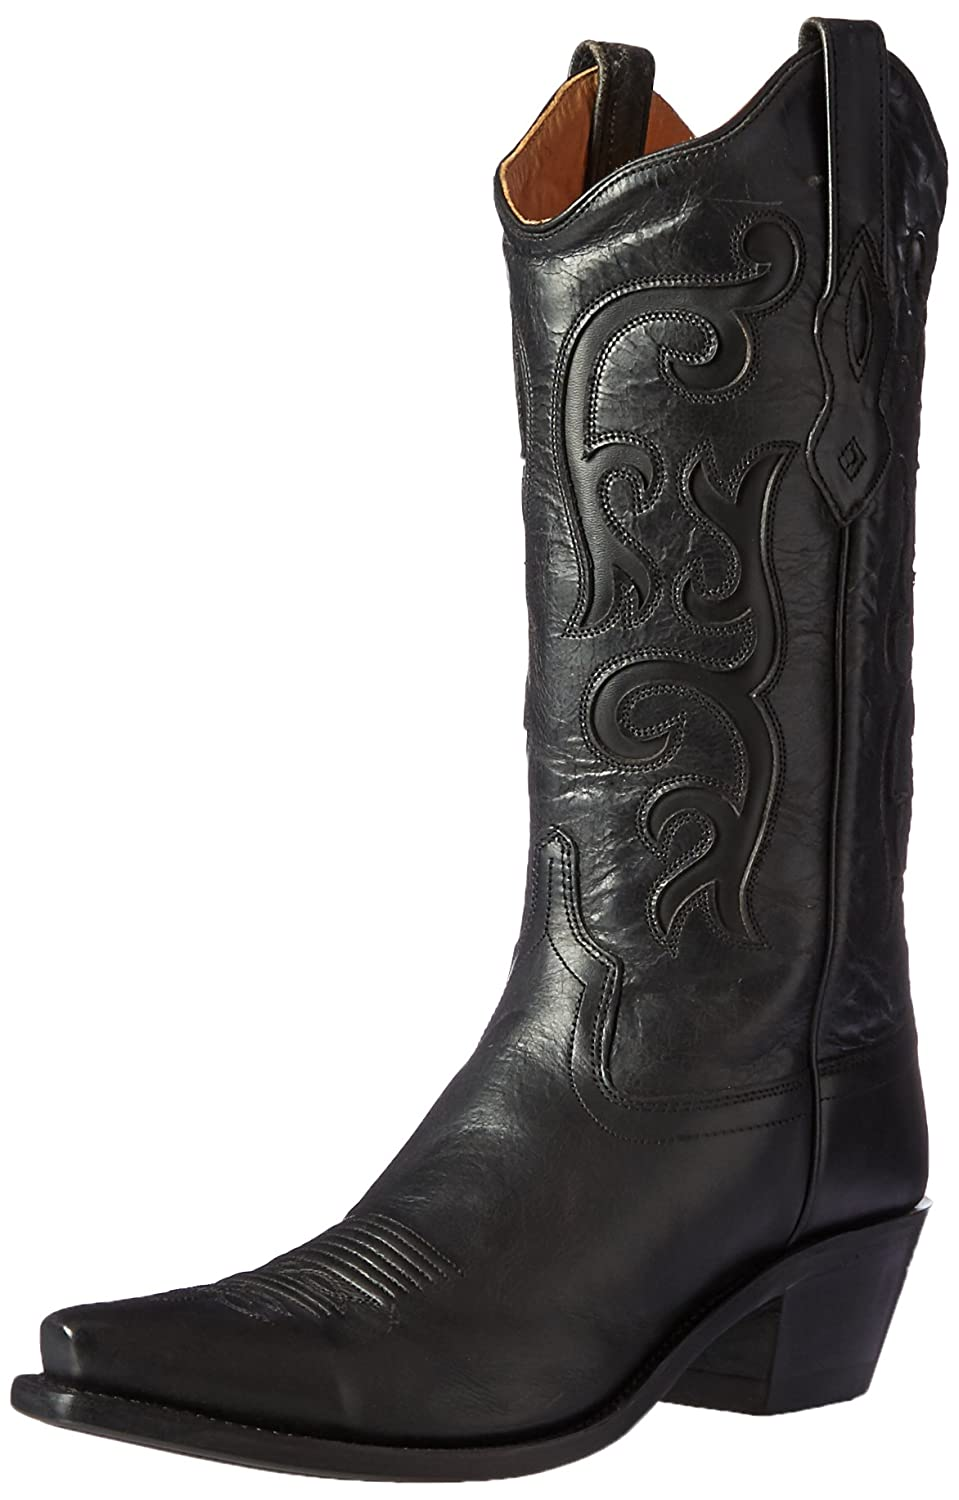 825b2752923 Old West Boots Women's LF1579